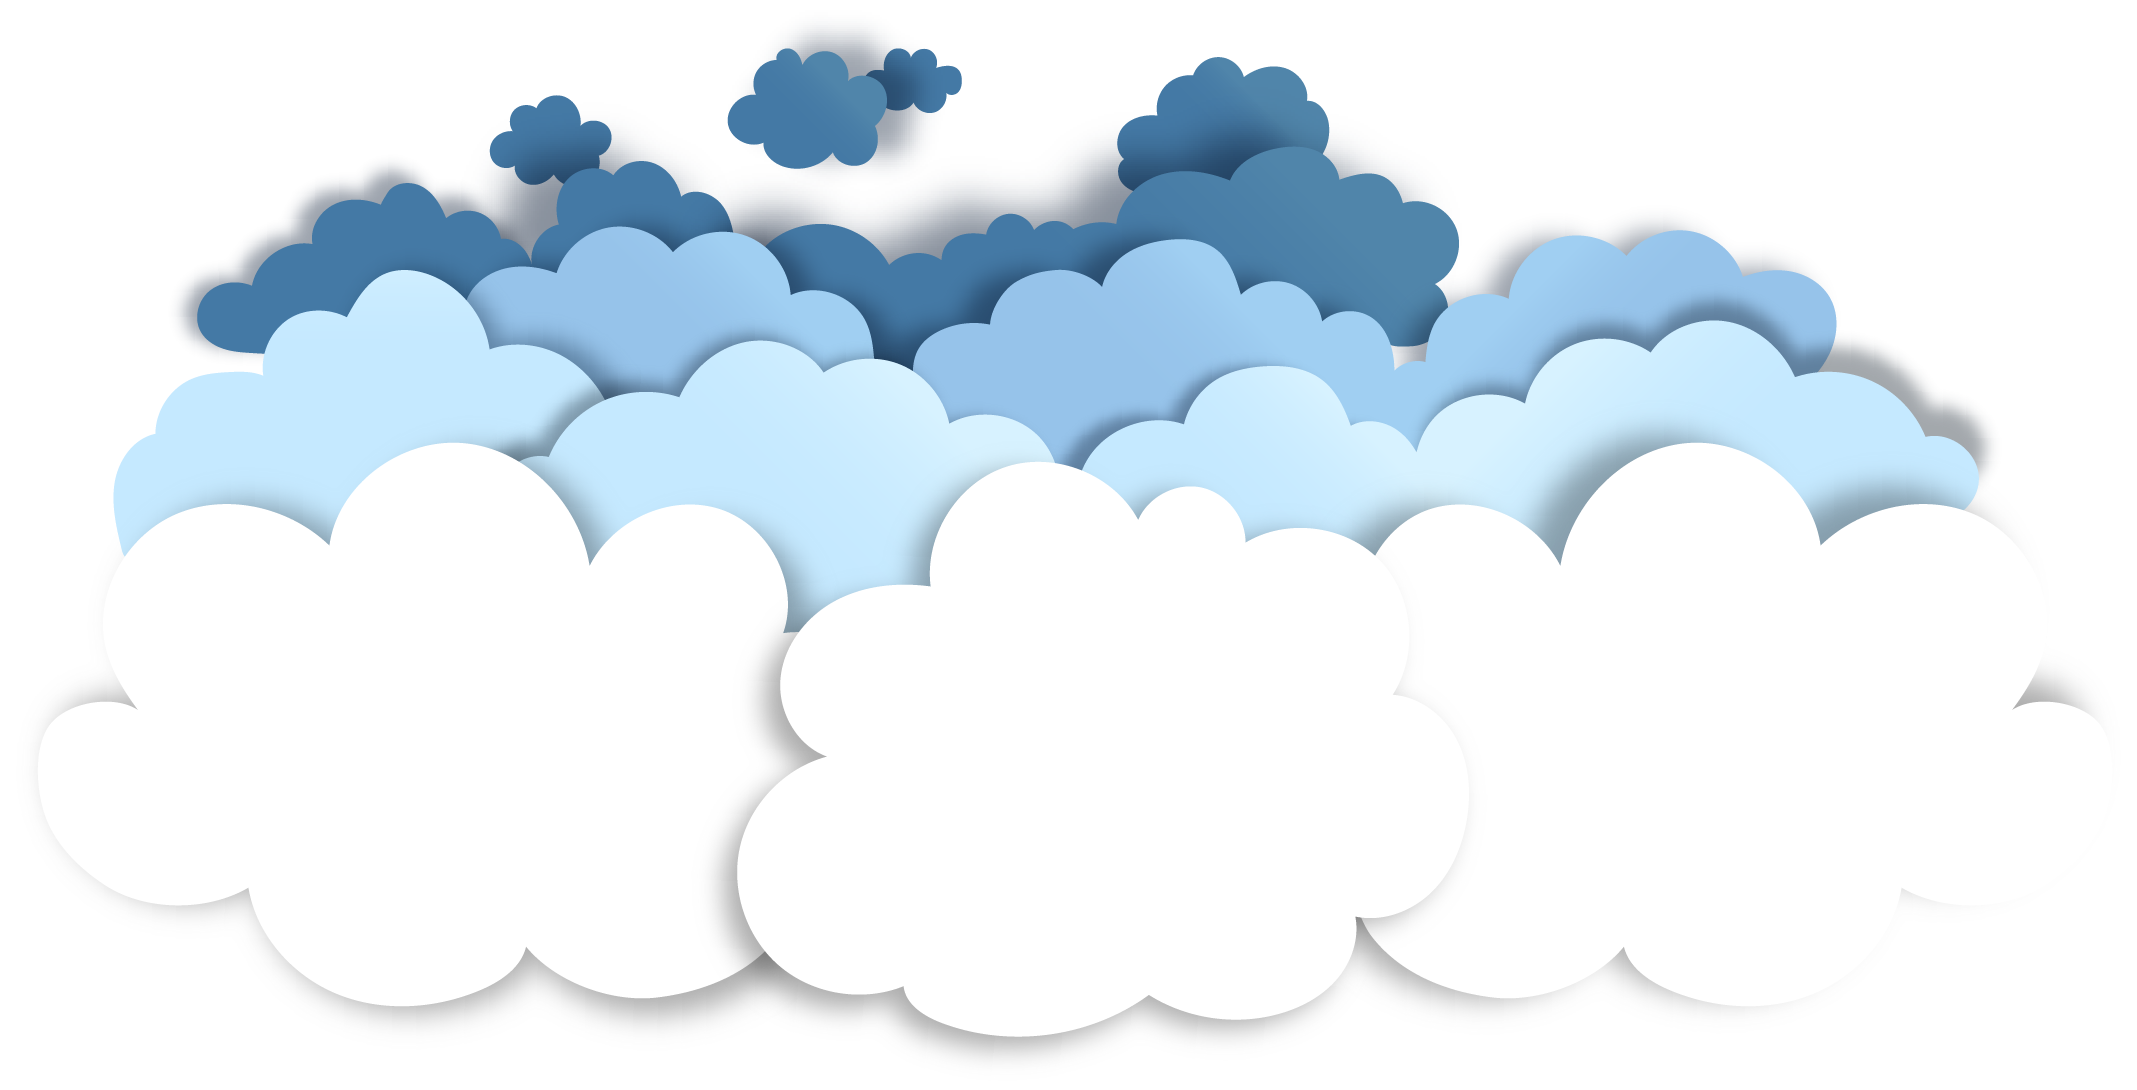 Cloud Vector Png at GetDrawings com | Free for personal use Cloud